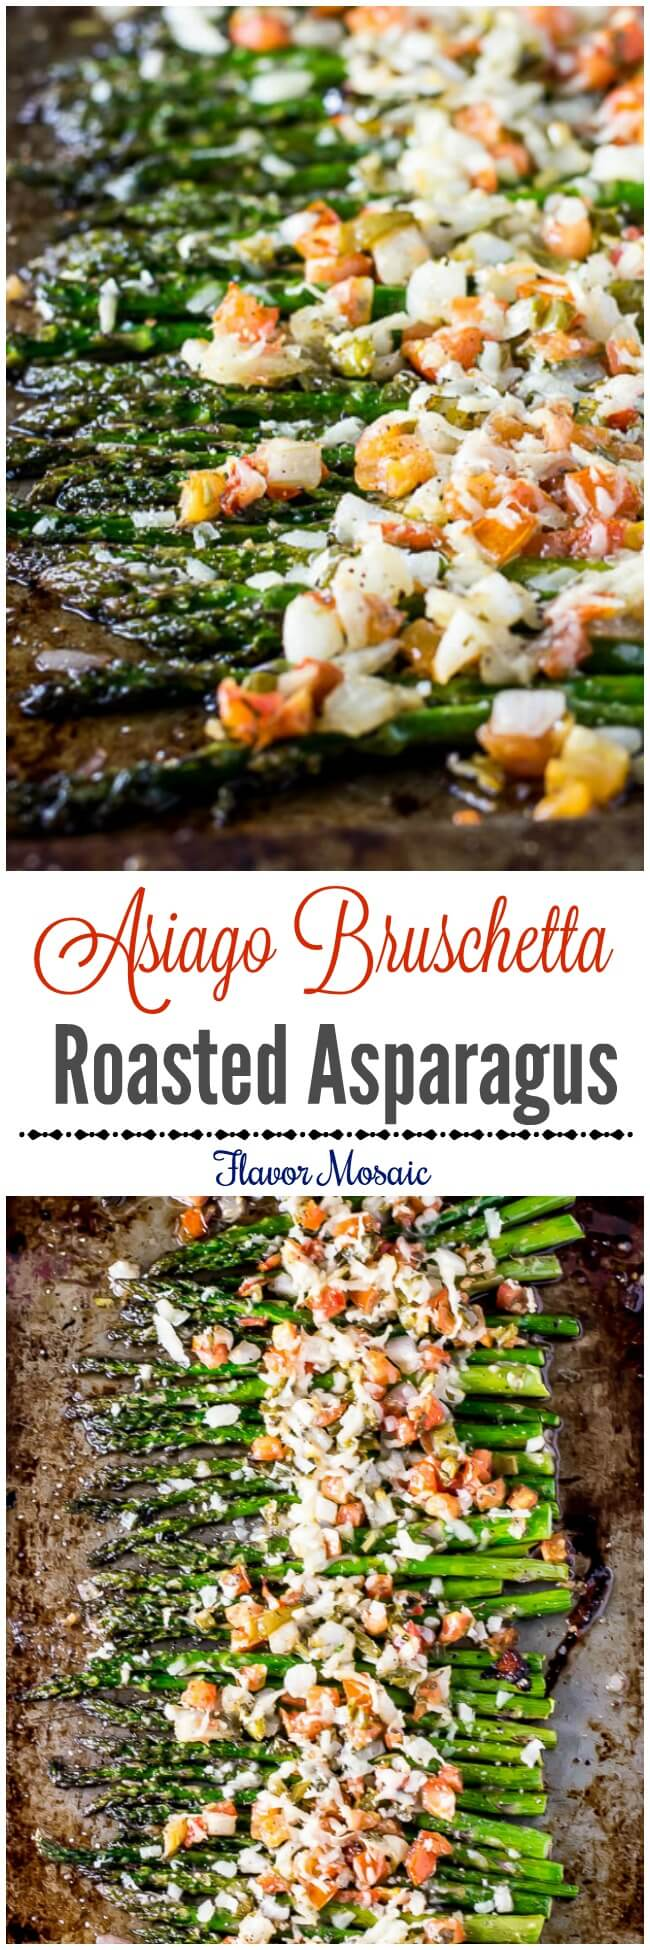 Asiago Bruschetta Roasted Asparagus